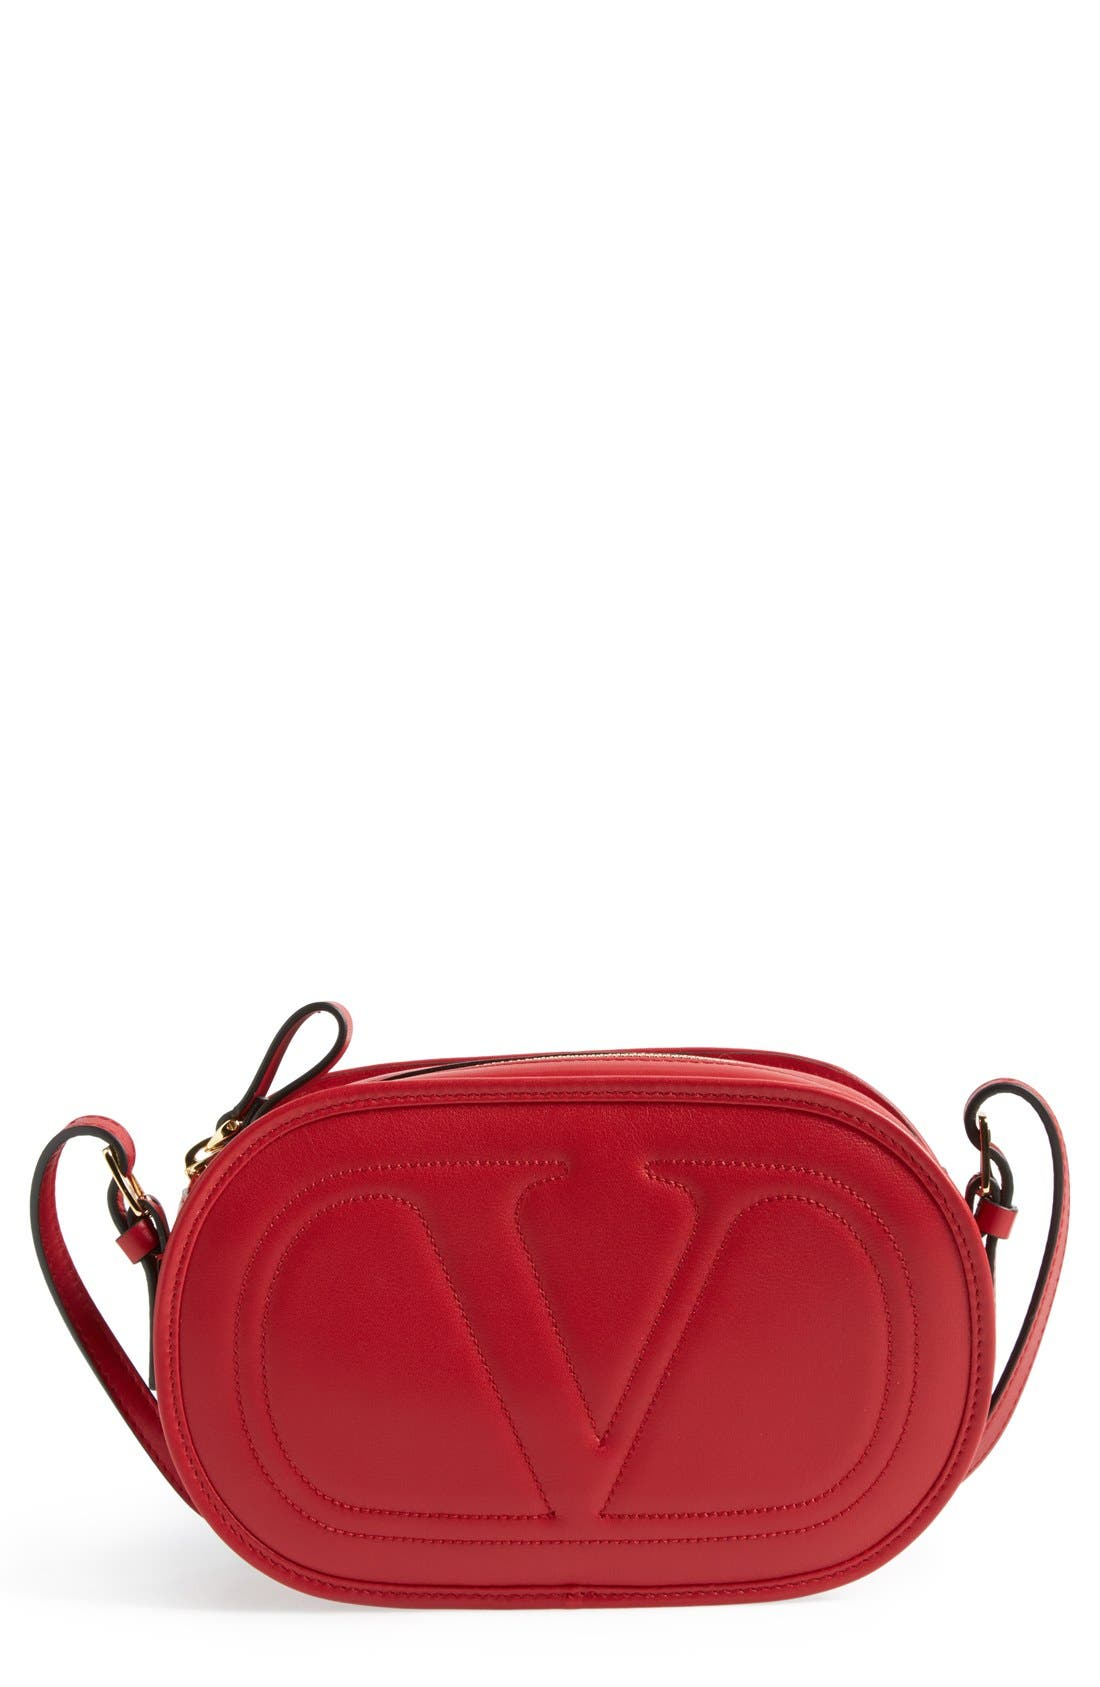 Alternate Image 1 Selected - Valentino 'Small Logo' Crossbody Bag